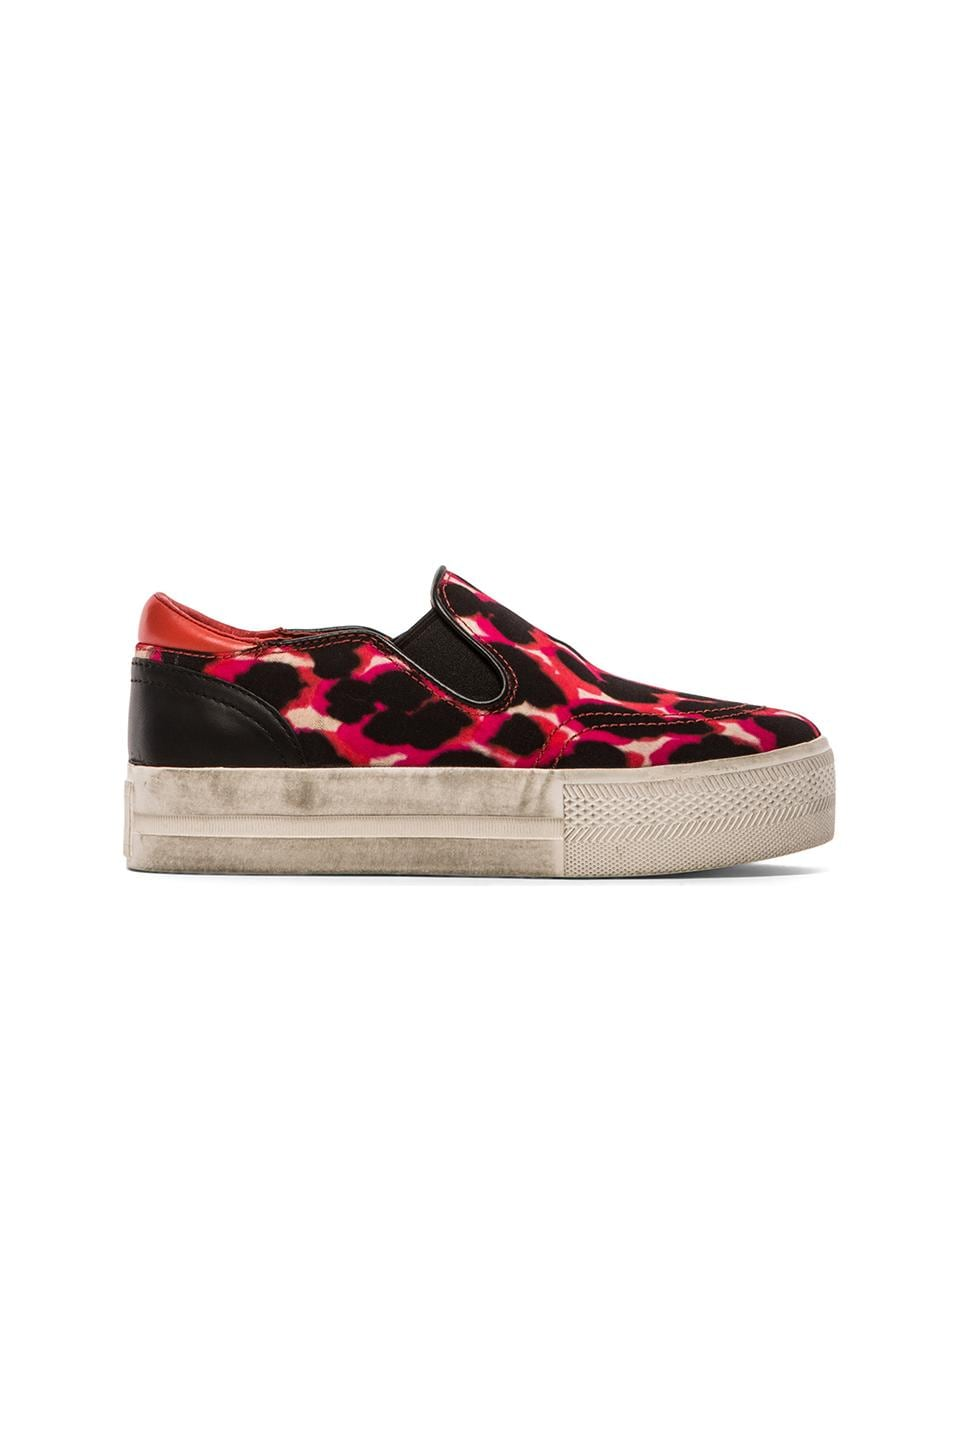 Ash Jungle Bis Sneaker in Coral & Black & Pink